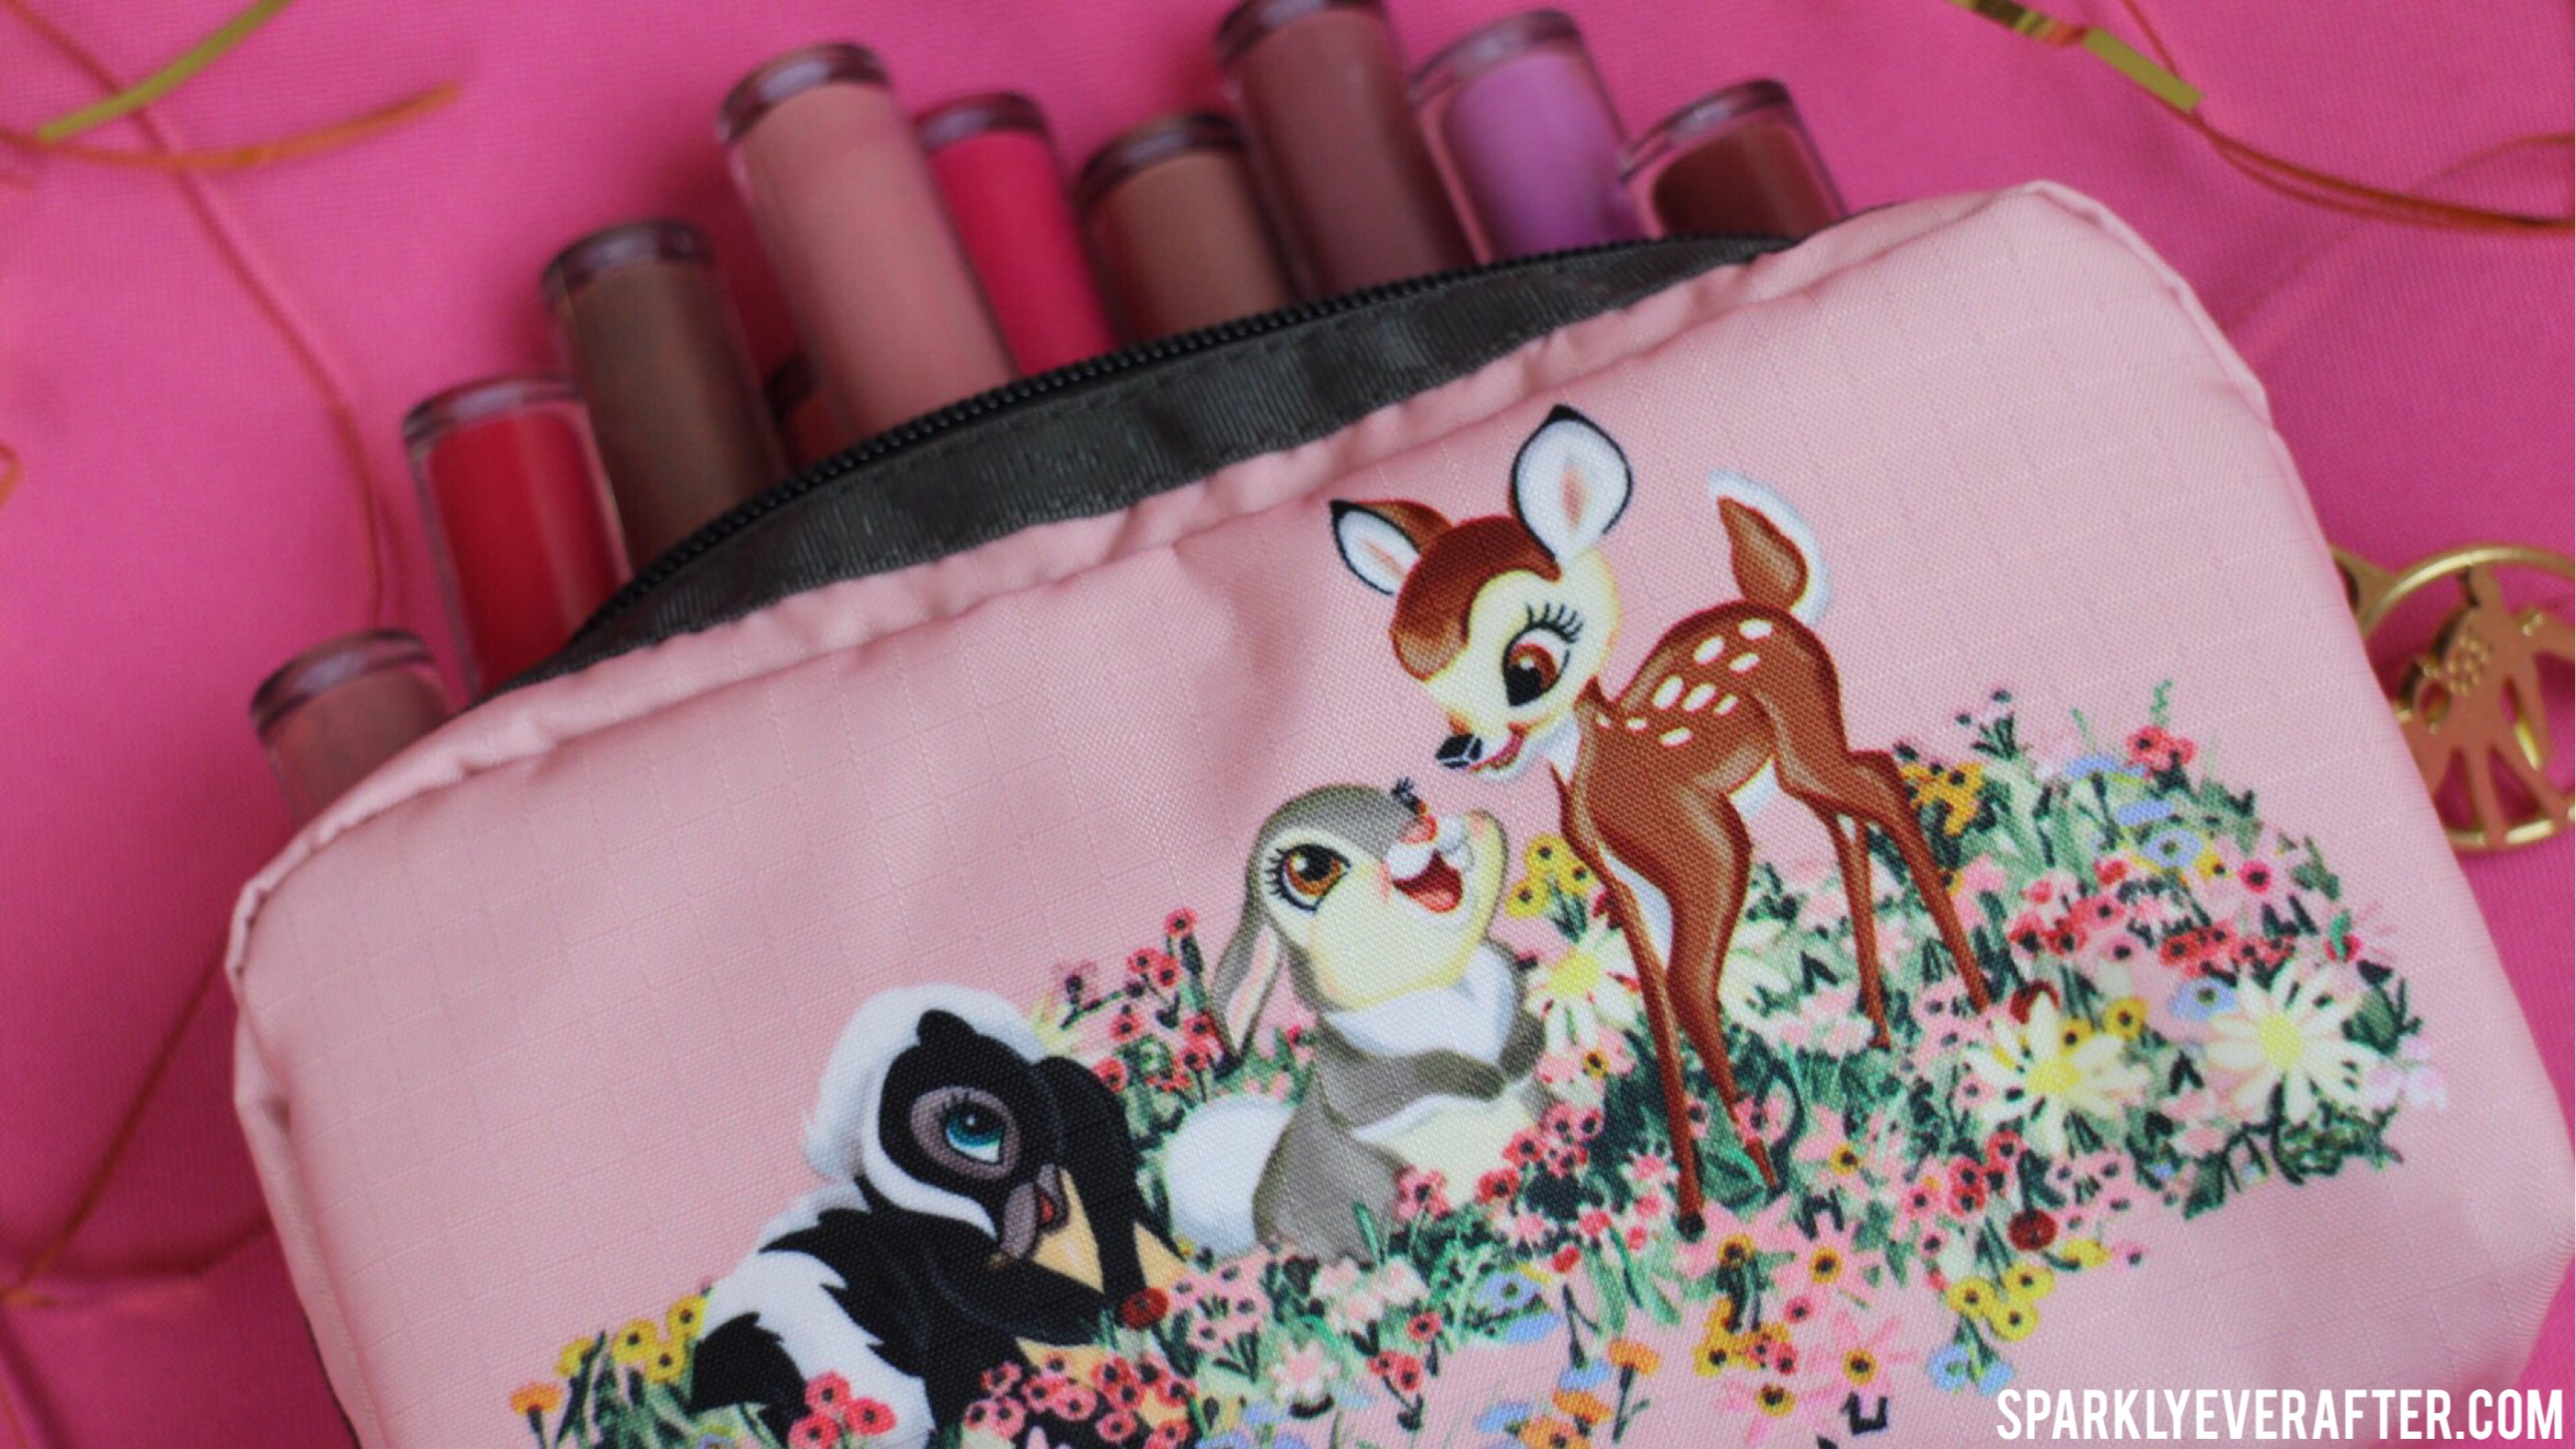 Disney LeSportsac Bambi Collection Rectangular Cosmetic SparklyEverAfter.com